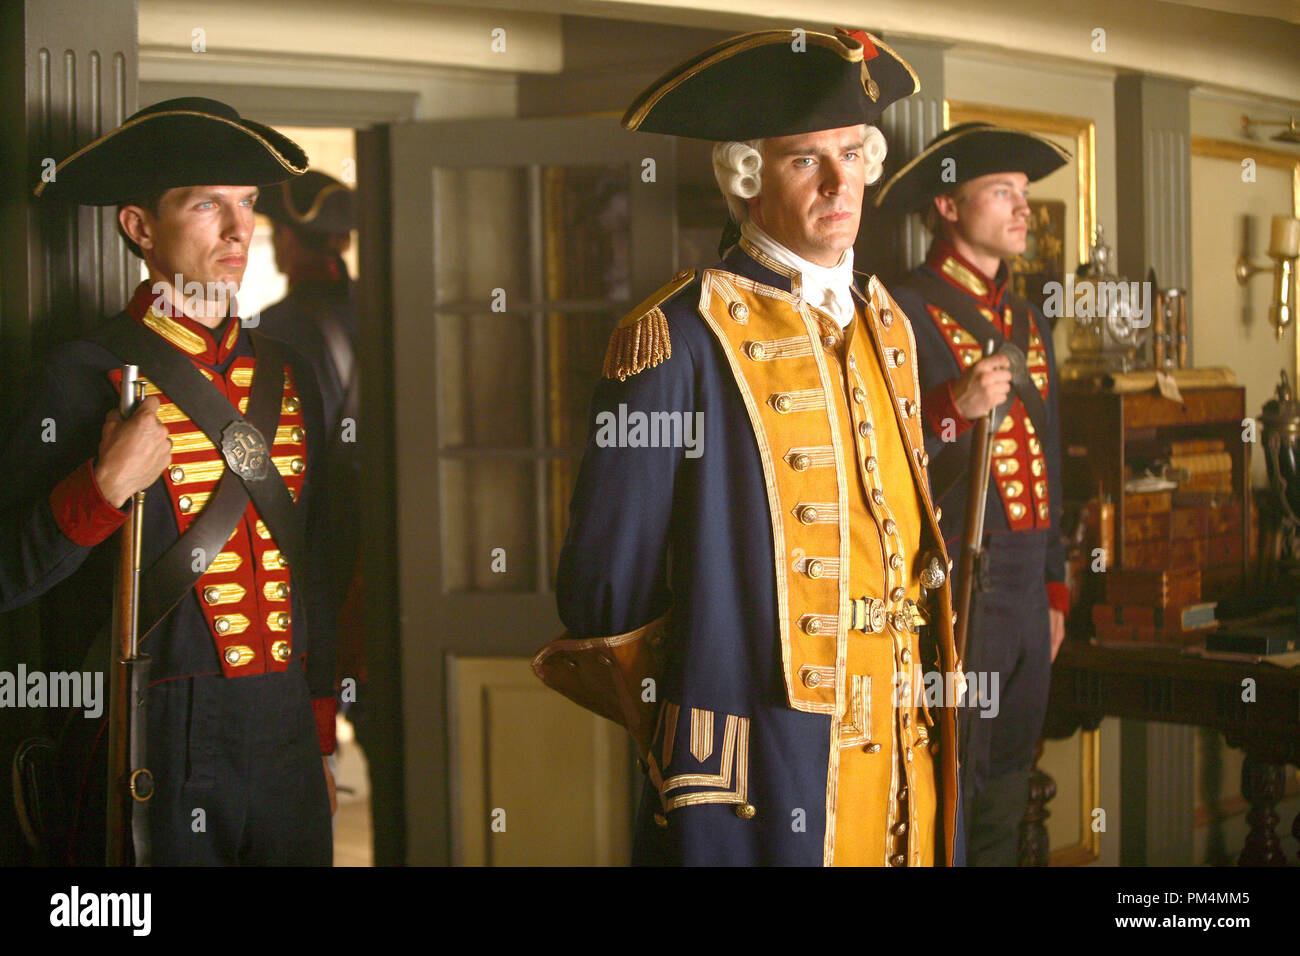 Walt Disney Pictures Presents 'Pirates of the Caribbean: At World's End' Jack Davenport - Stock Image